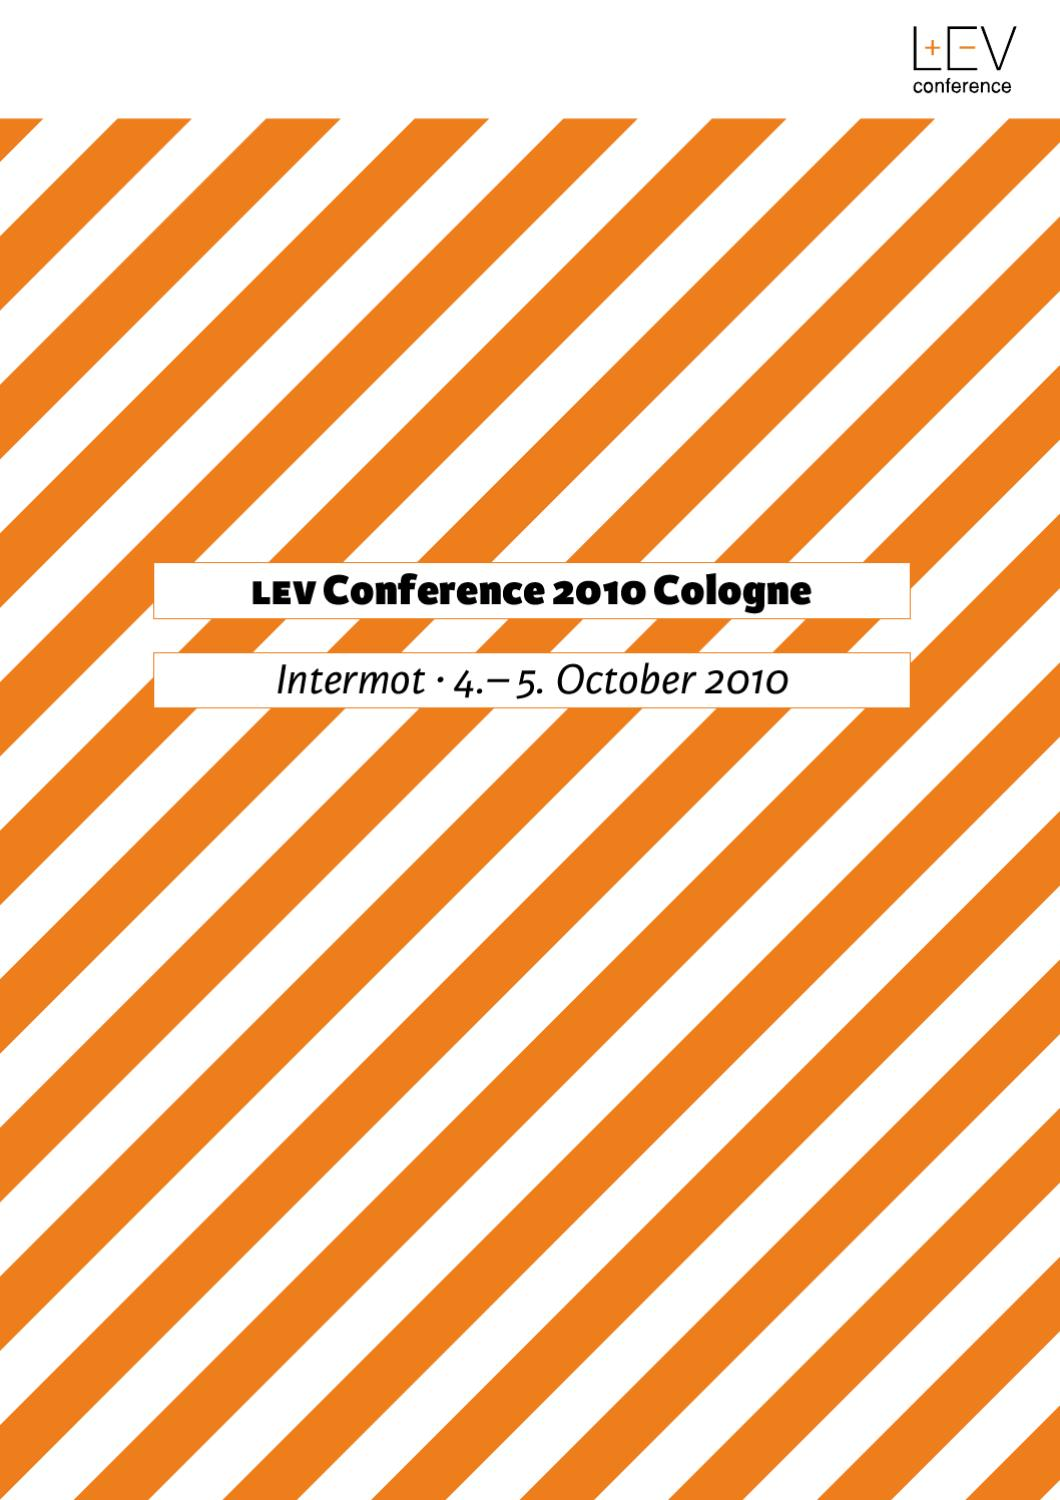 LEV Conference Reader by ExtraEnergy - issuu